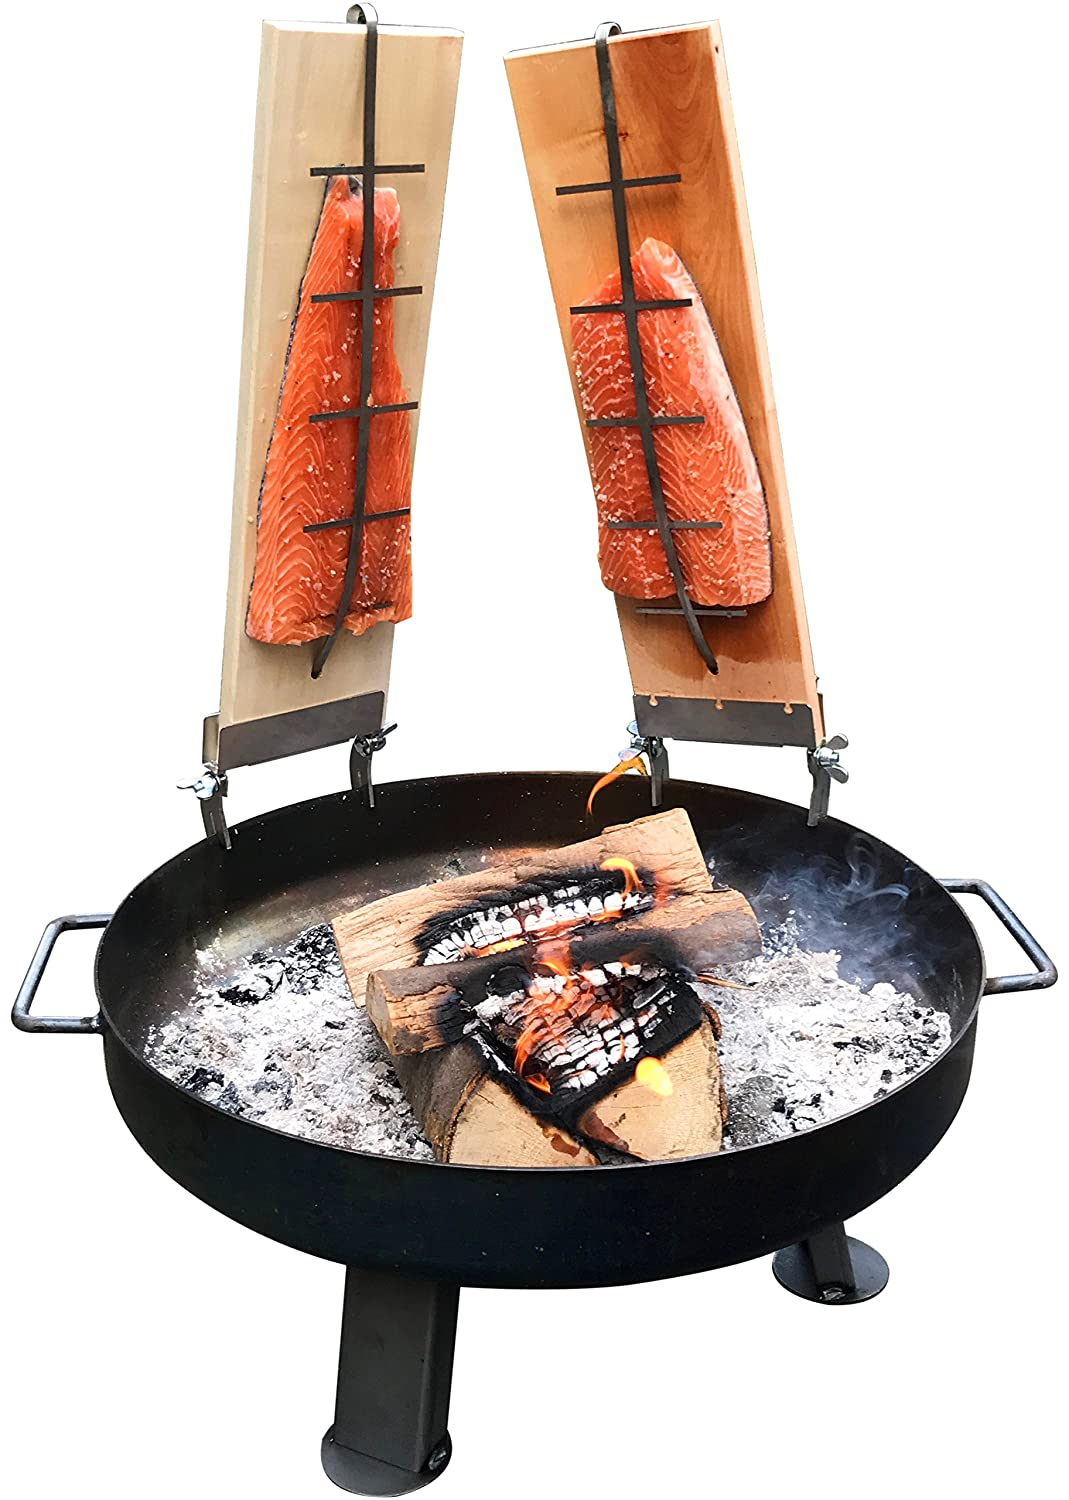 2 x Flame Salmon Board Made Of Finnish Birch, Seamlessly adjustable for Salmon up to 1.5 kg, Original Flame Salmon Board for Real Flame Salmon, Grill Plank, Smoke Board with Flexible Fish Holder acerto